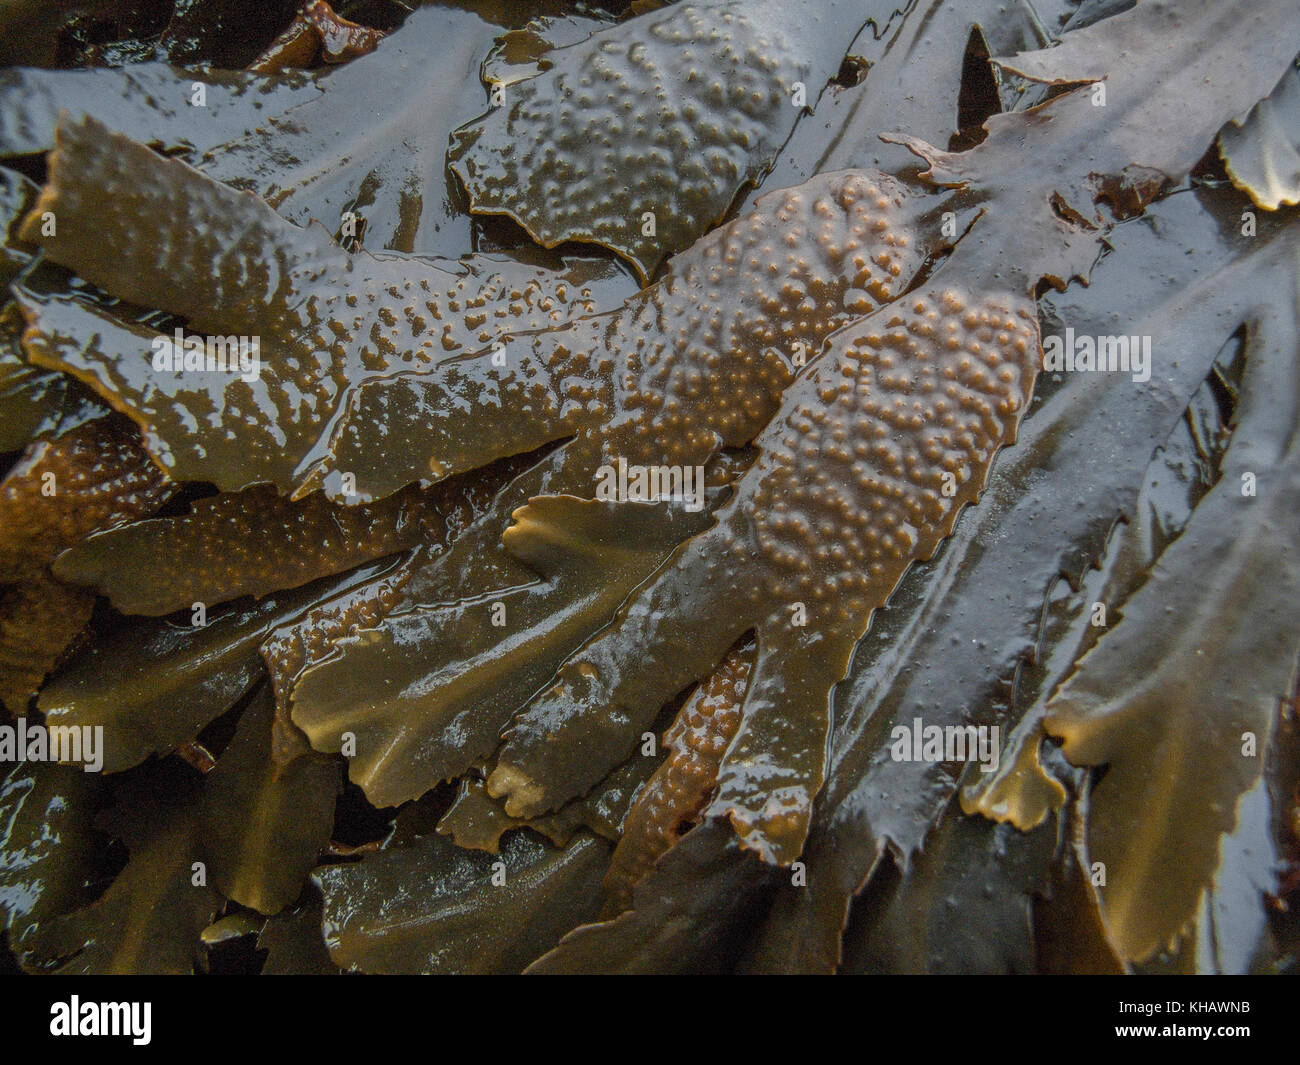 Frond tips of the seaweed Fucus serratus - various called Serrated Wrack, Toothed Wrack, Saw Wrack. - Stock Image